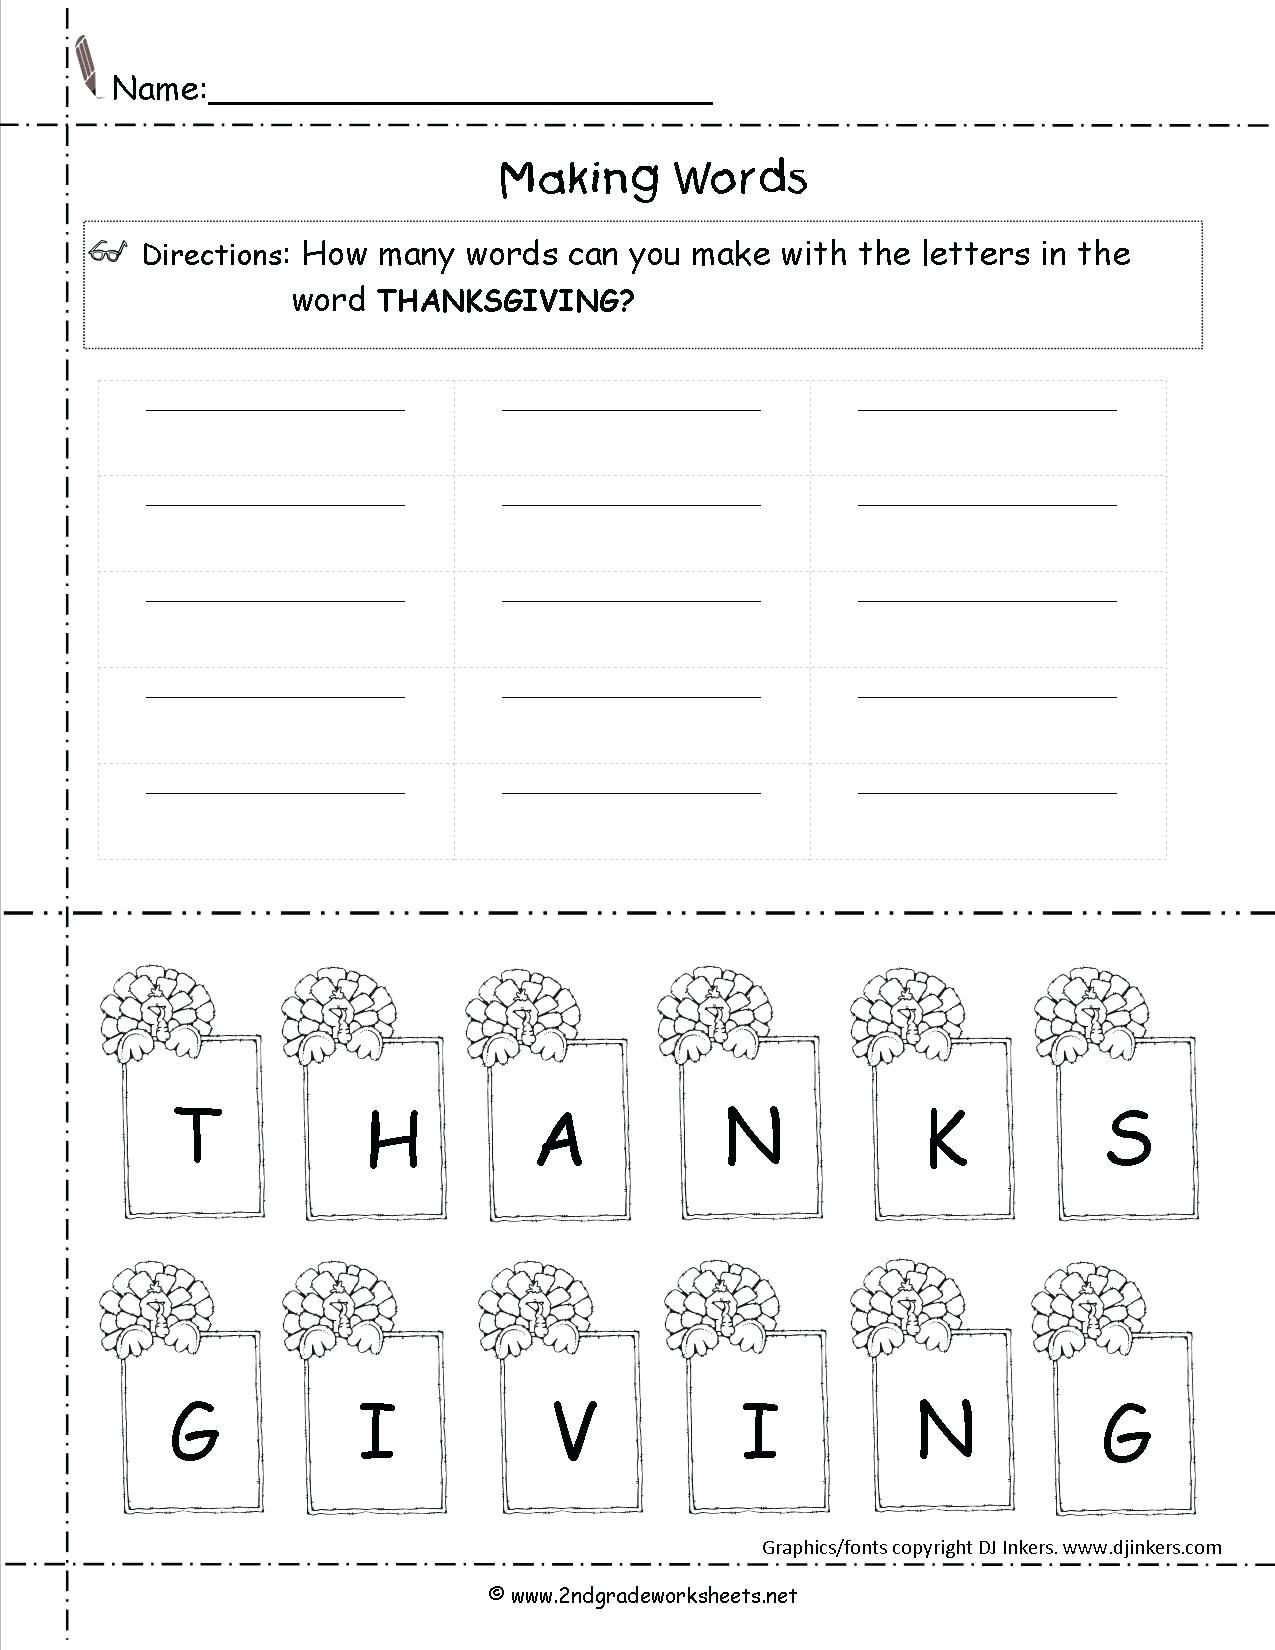 Making Words Worksheets The Best Worksheets Image Collection